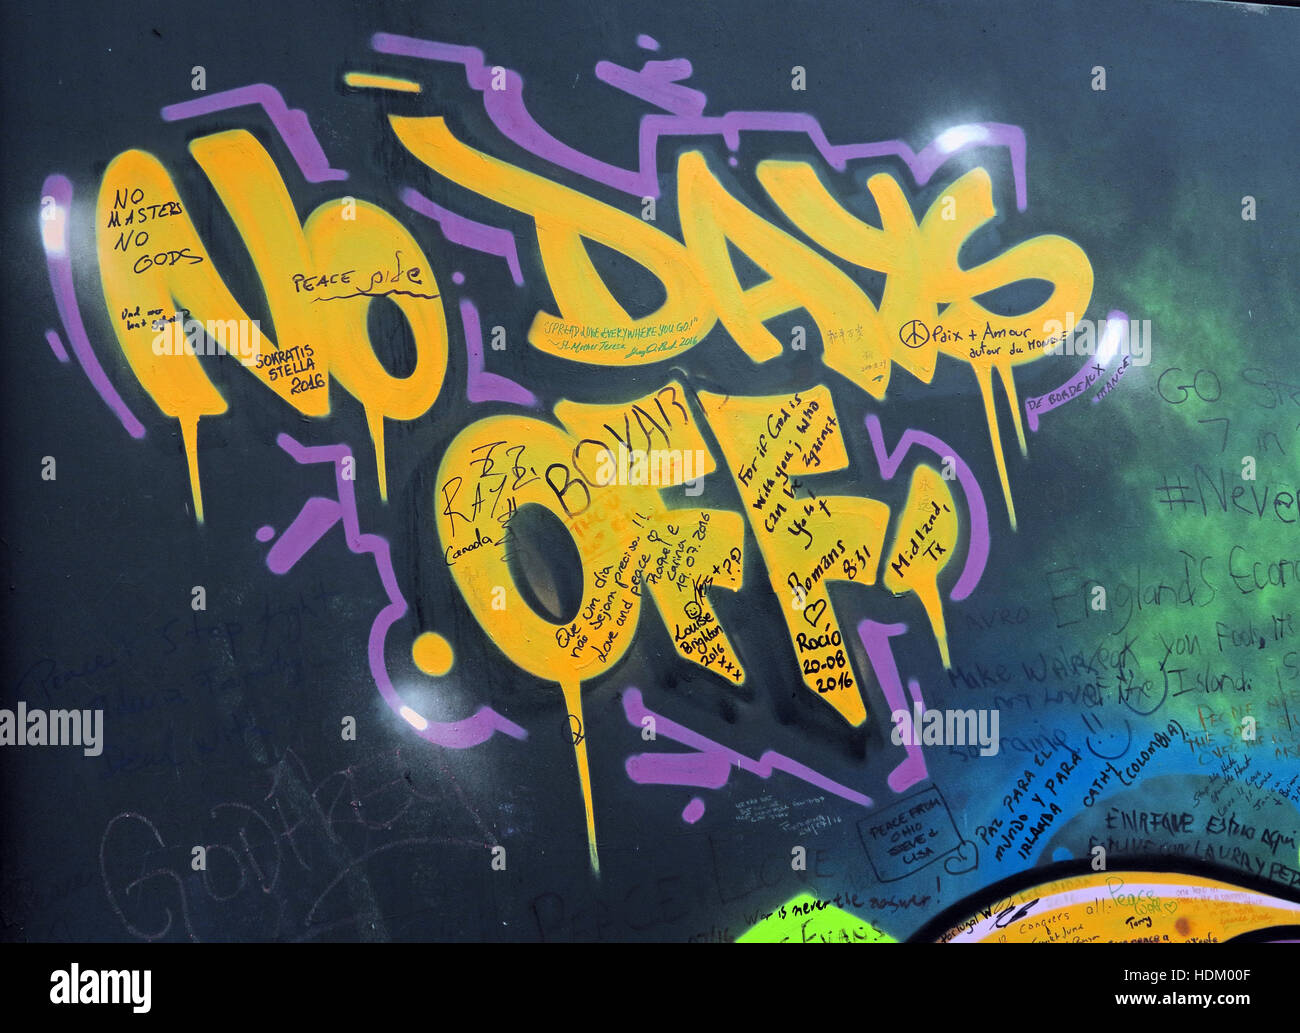 No Days Off - Belfast International Peace Wall Grafitti,Cupar way,West Belfast,NI,UK - Stock Image